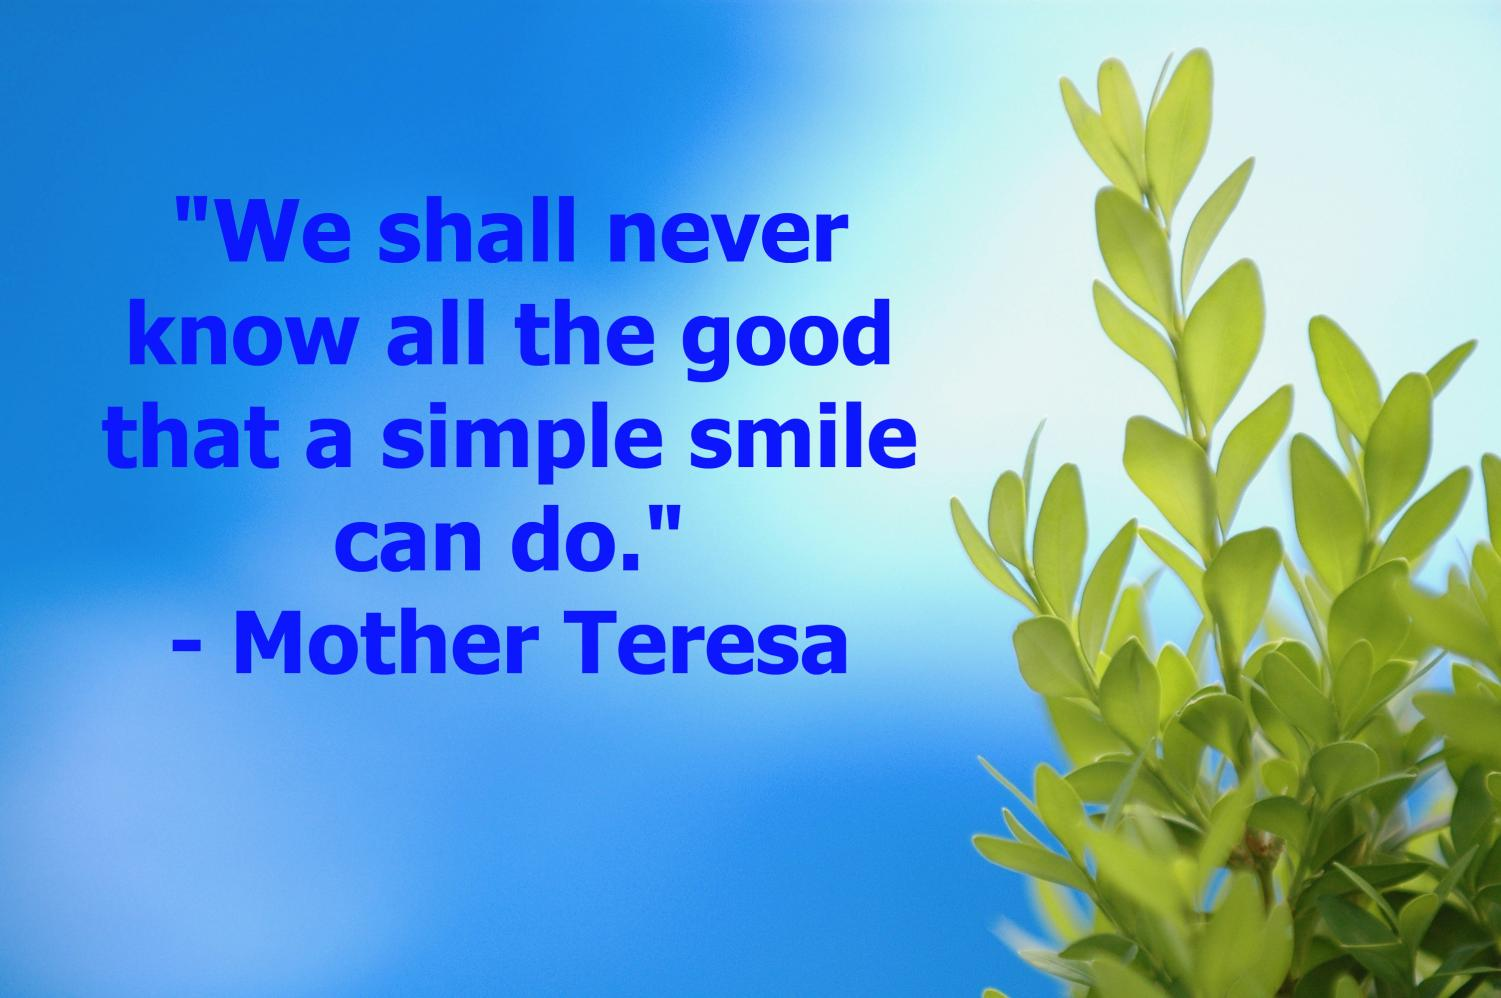 This is a quote by Saint Mother Teresa.